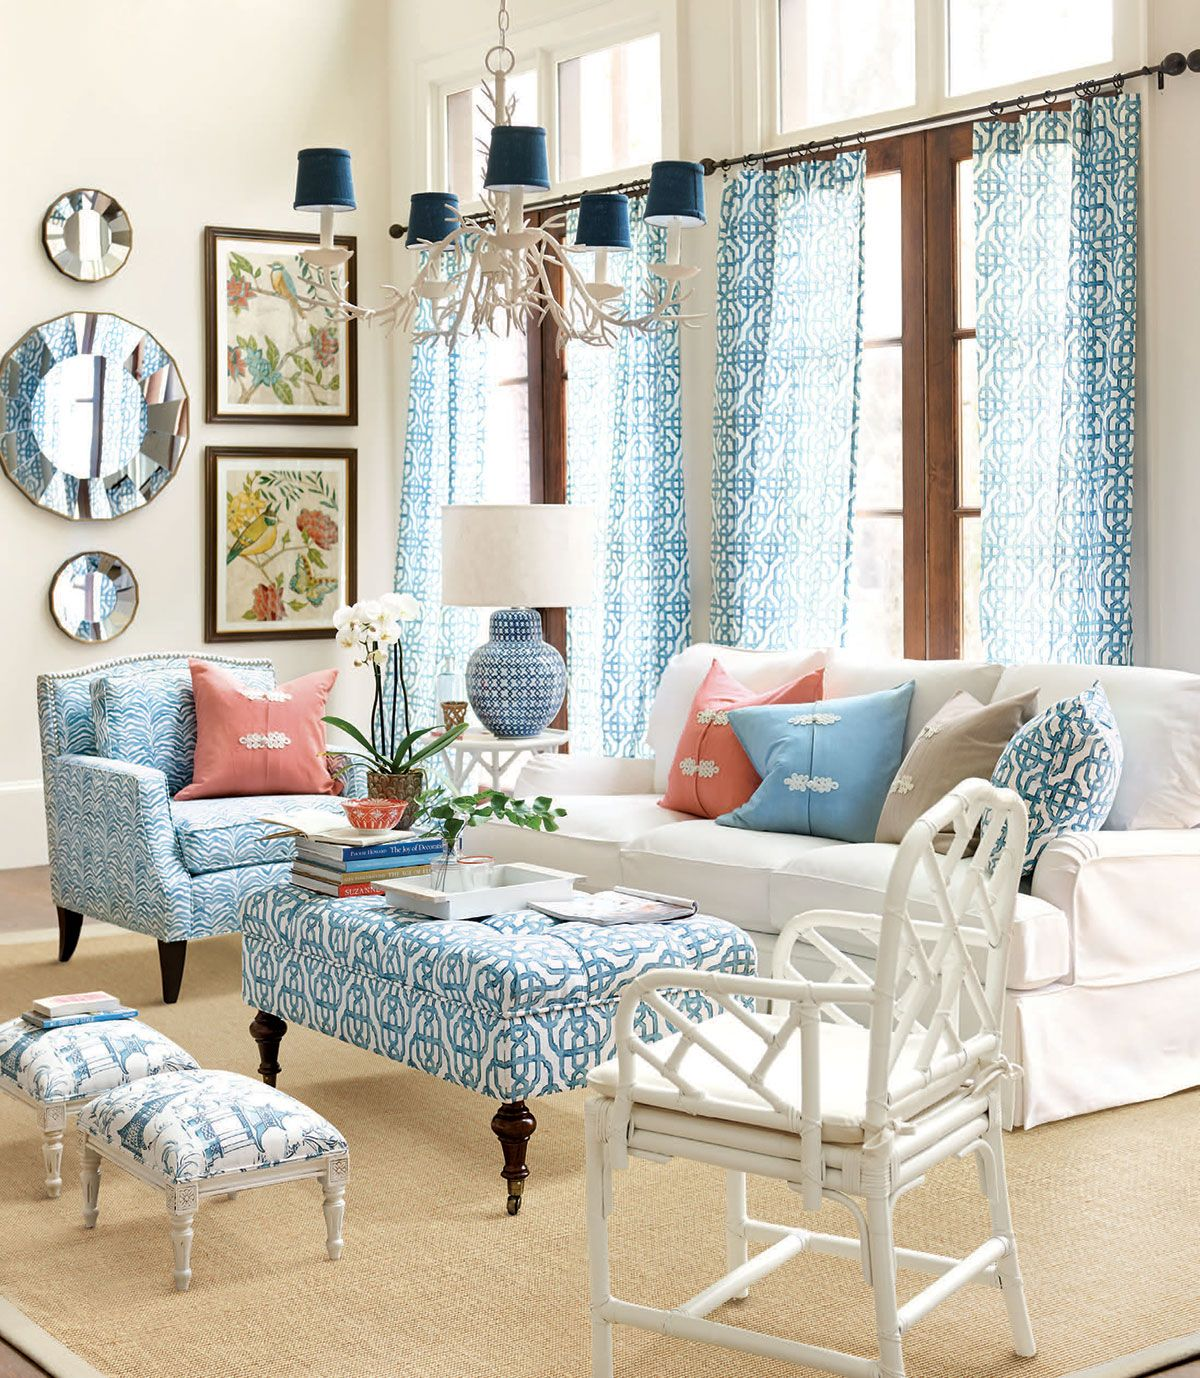 This living room feels fresh and happy thanks to a coral and blue color palette